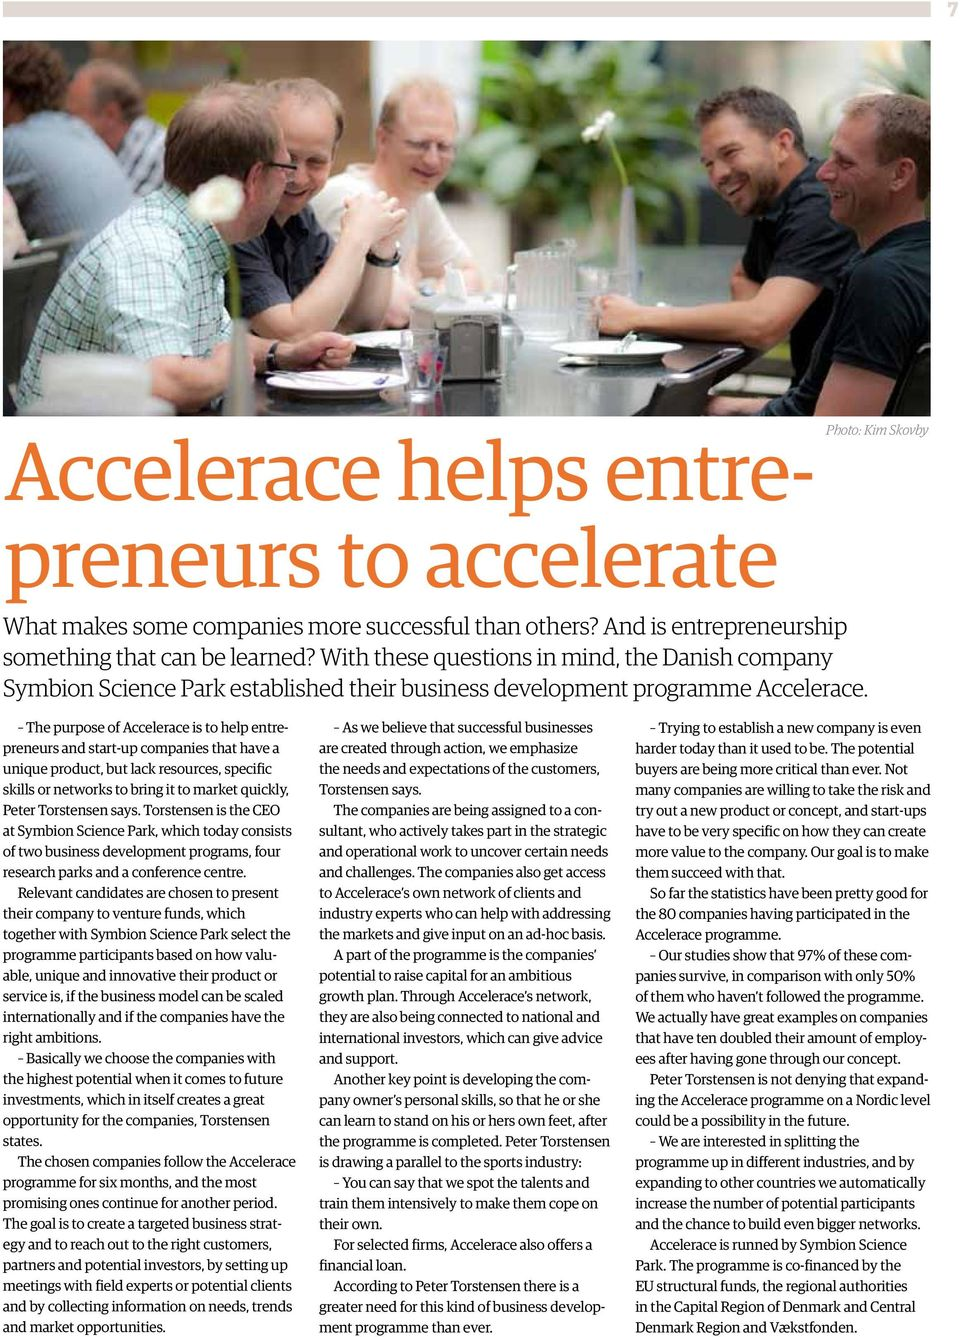 The purpose of Accelerace is to help entrepreneurs and start-up companies that have a unique product, but lack resources, specific skills or networks to bring it to market quickly, Peter Torstensen